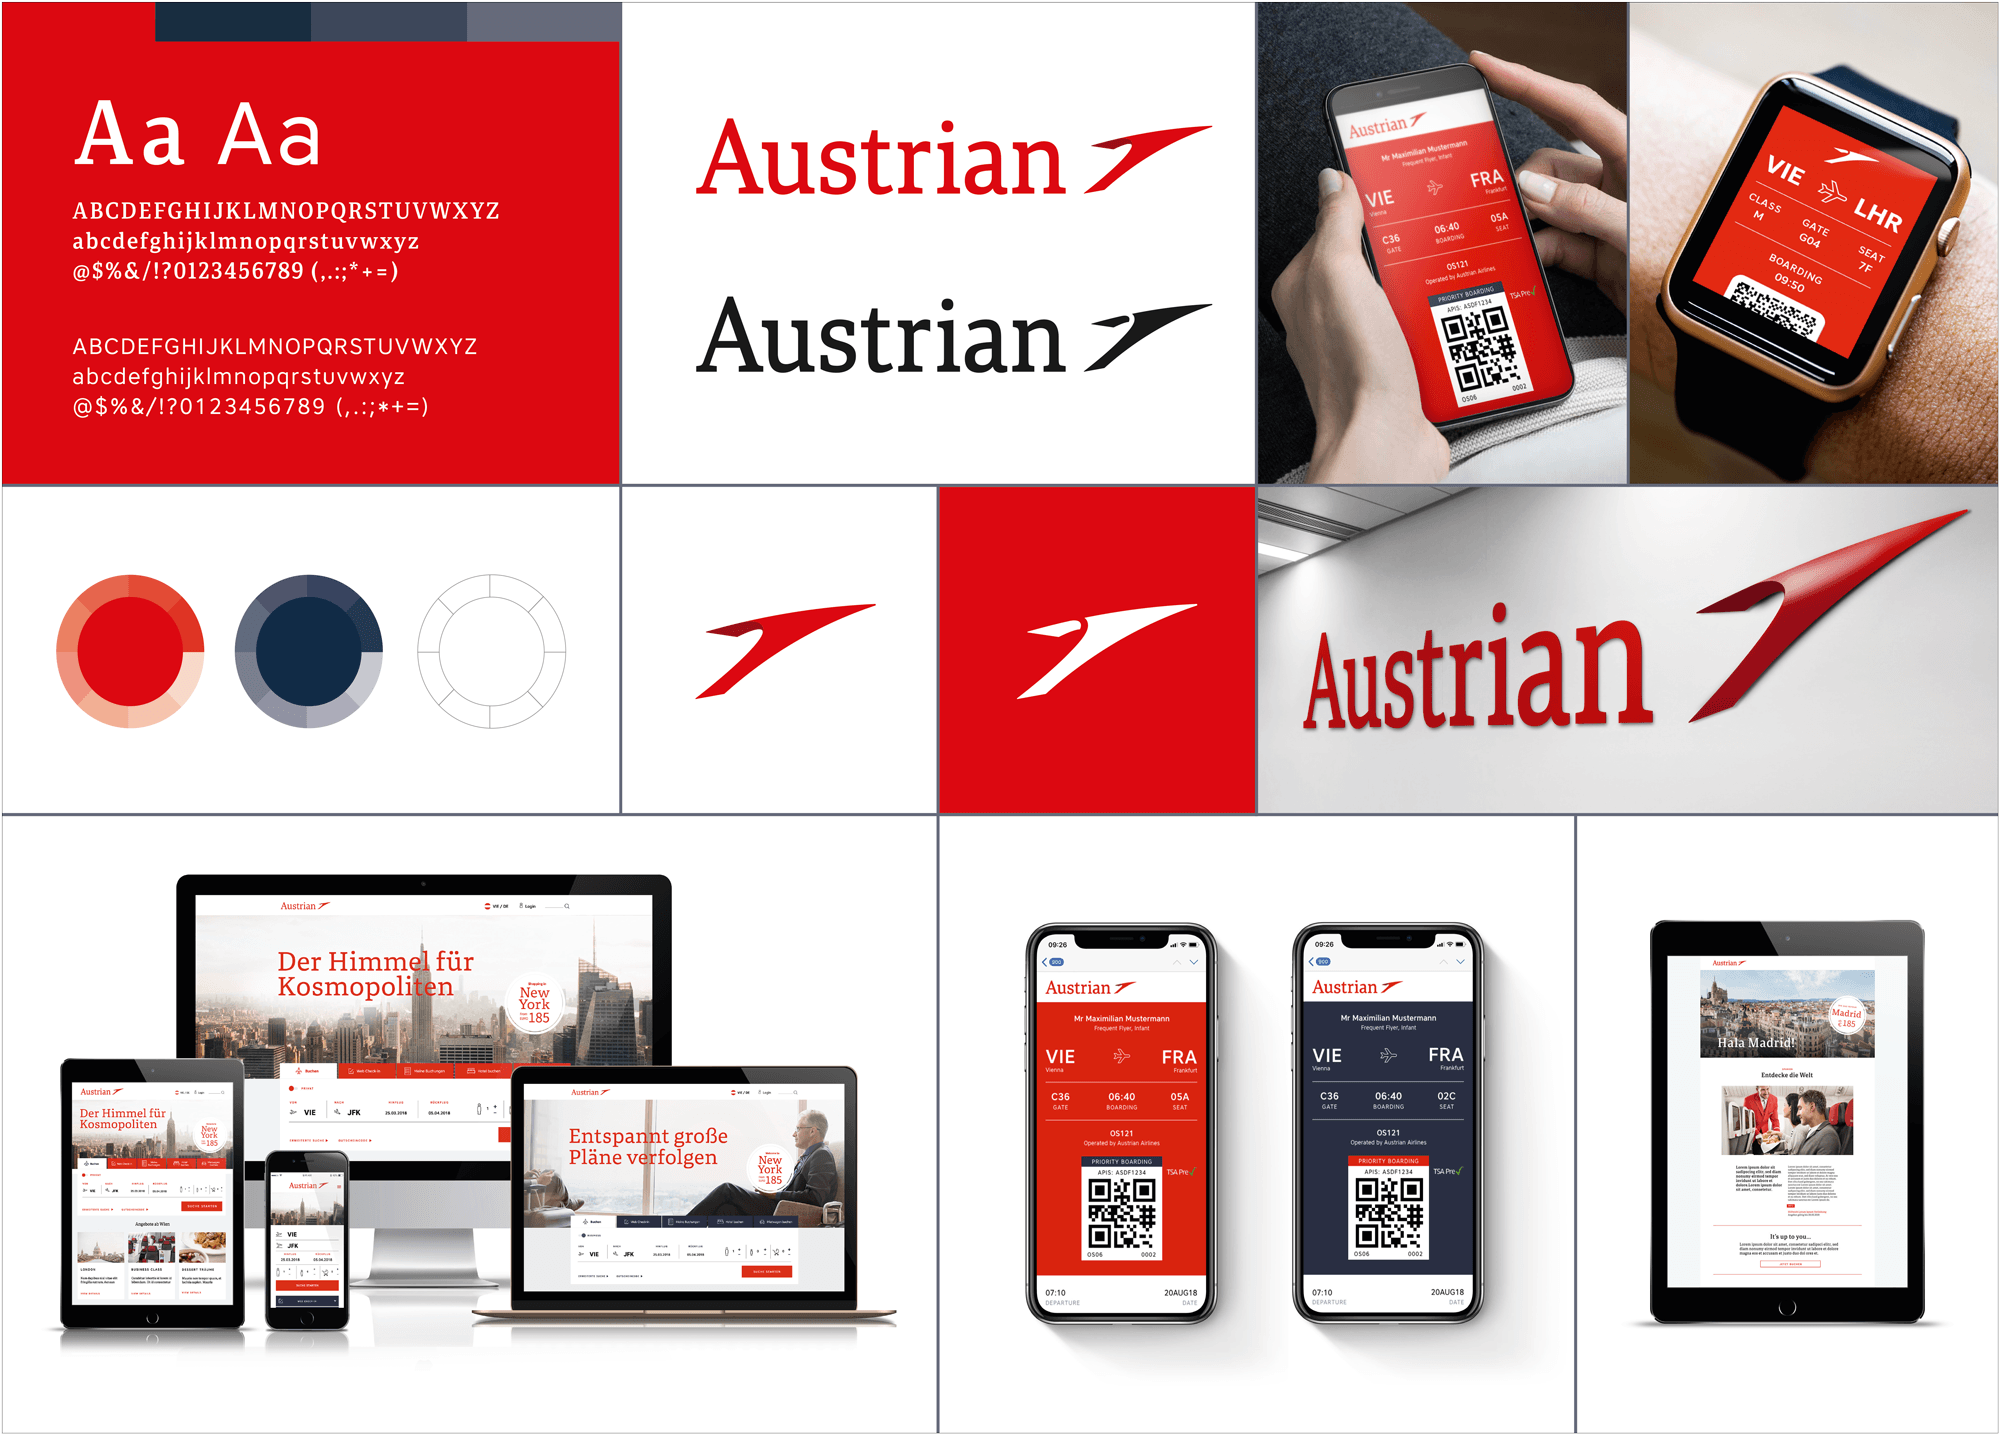 Red Dot Design Award Austrian Airlines Rebranding